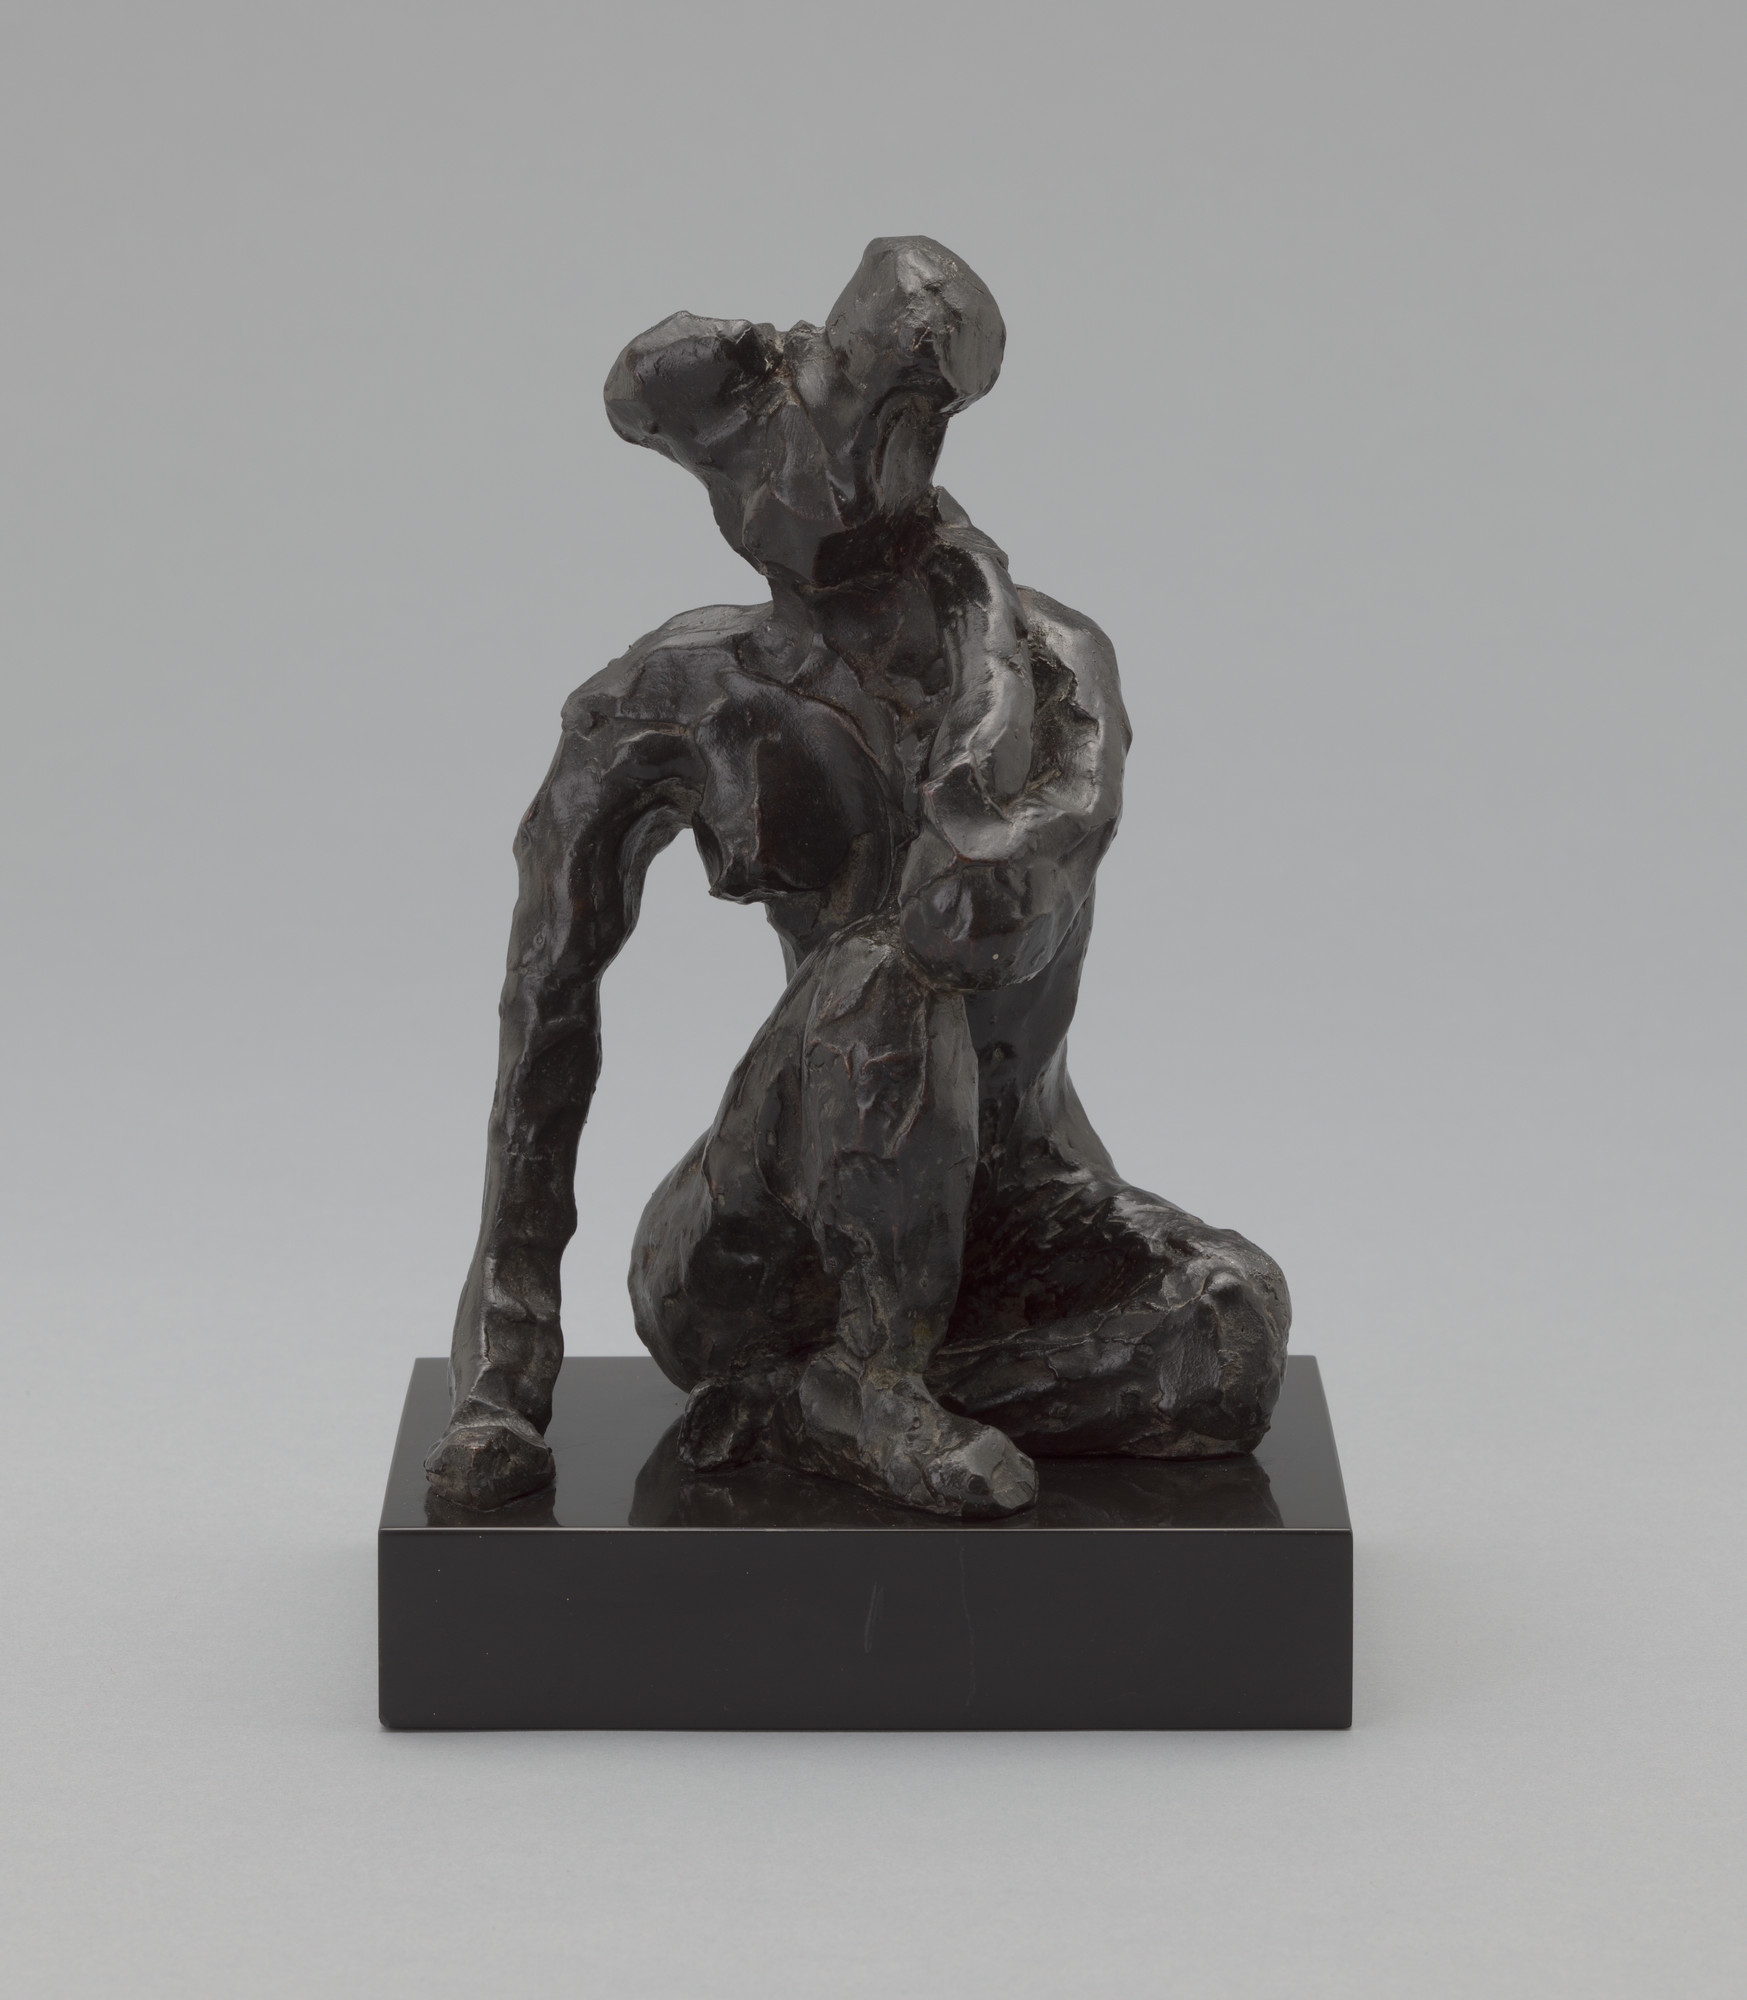 Henri Matisse. Seated Figure, Right Hand on Ground. Paris, fall 1908 (cast c. 1930)